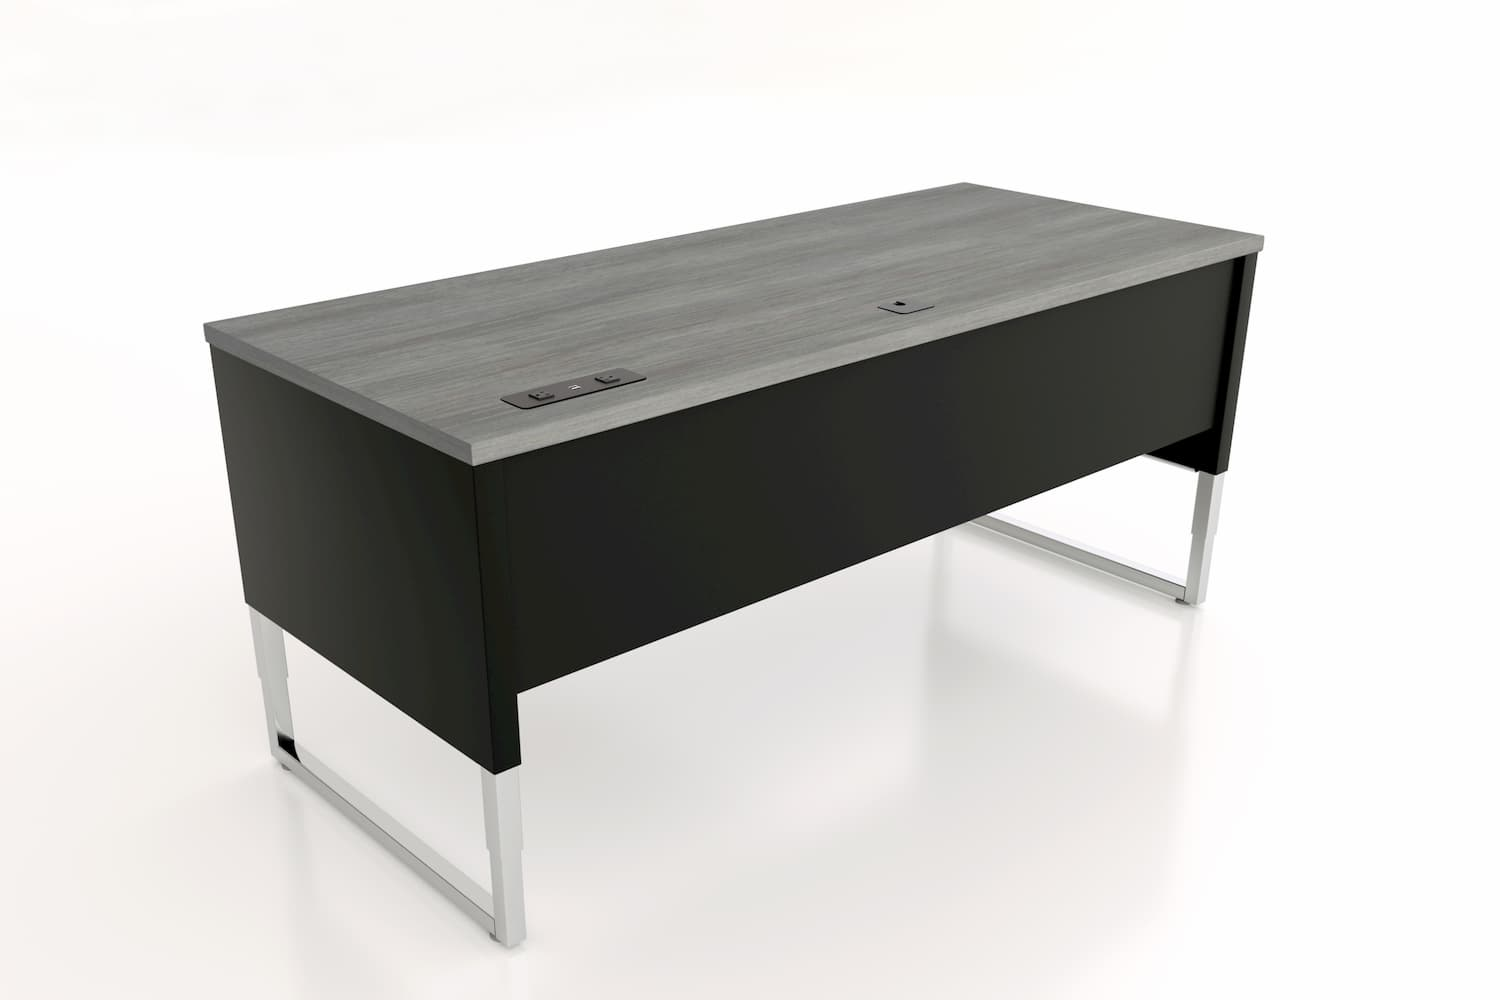 Advent-Desk-ADV-7230-BK-Custom-Top-11-Back